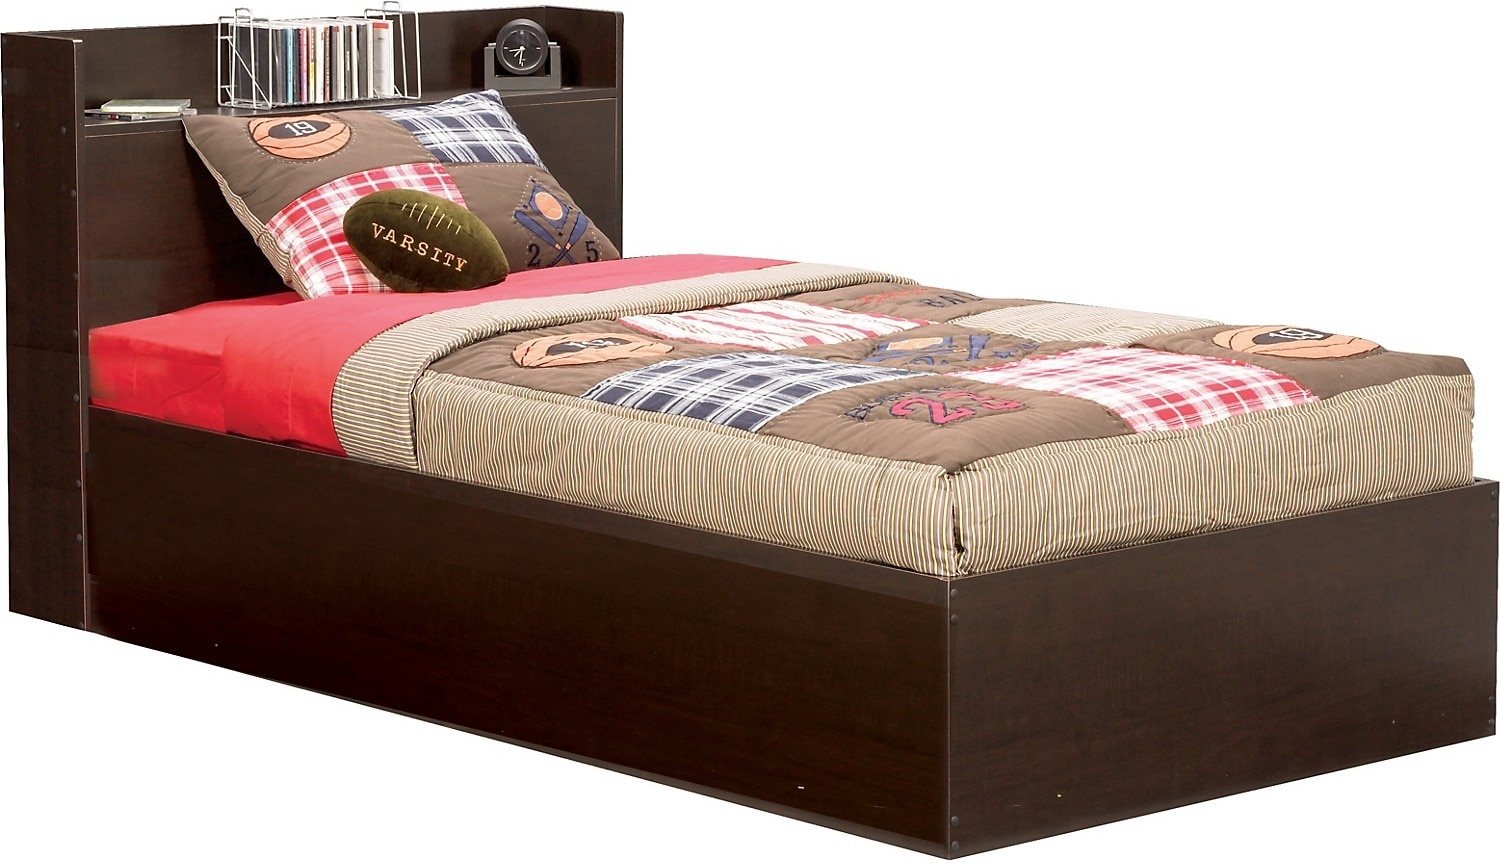 Big league twin mates bed united furniture warehouse for Youth furniture